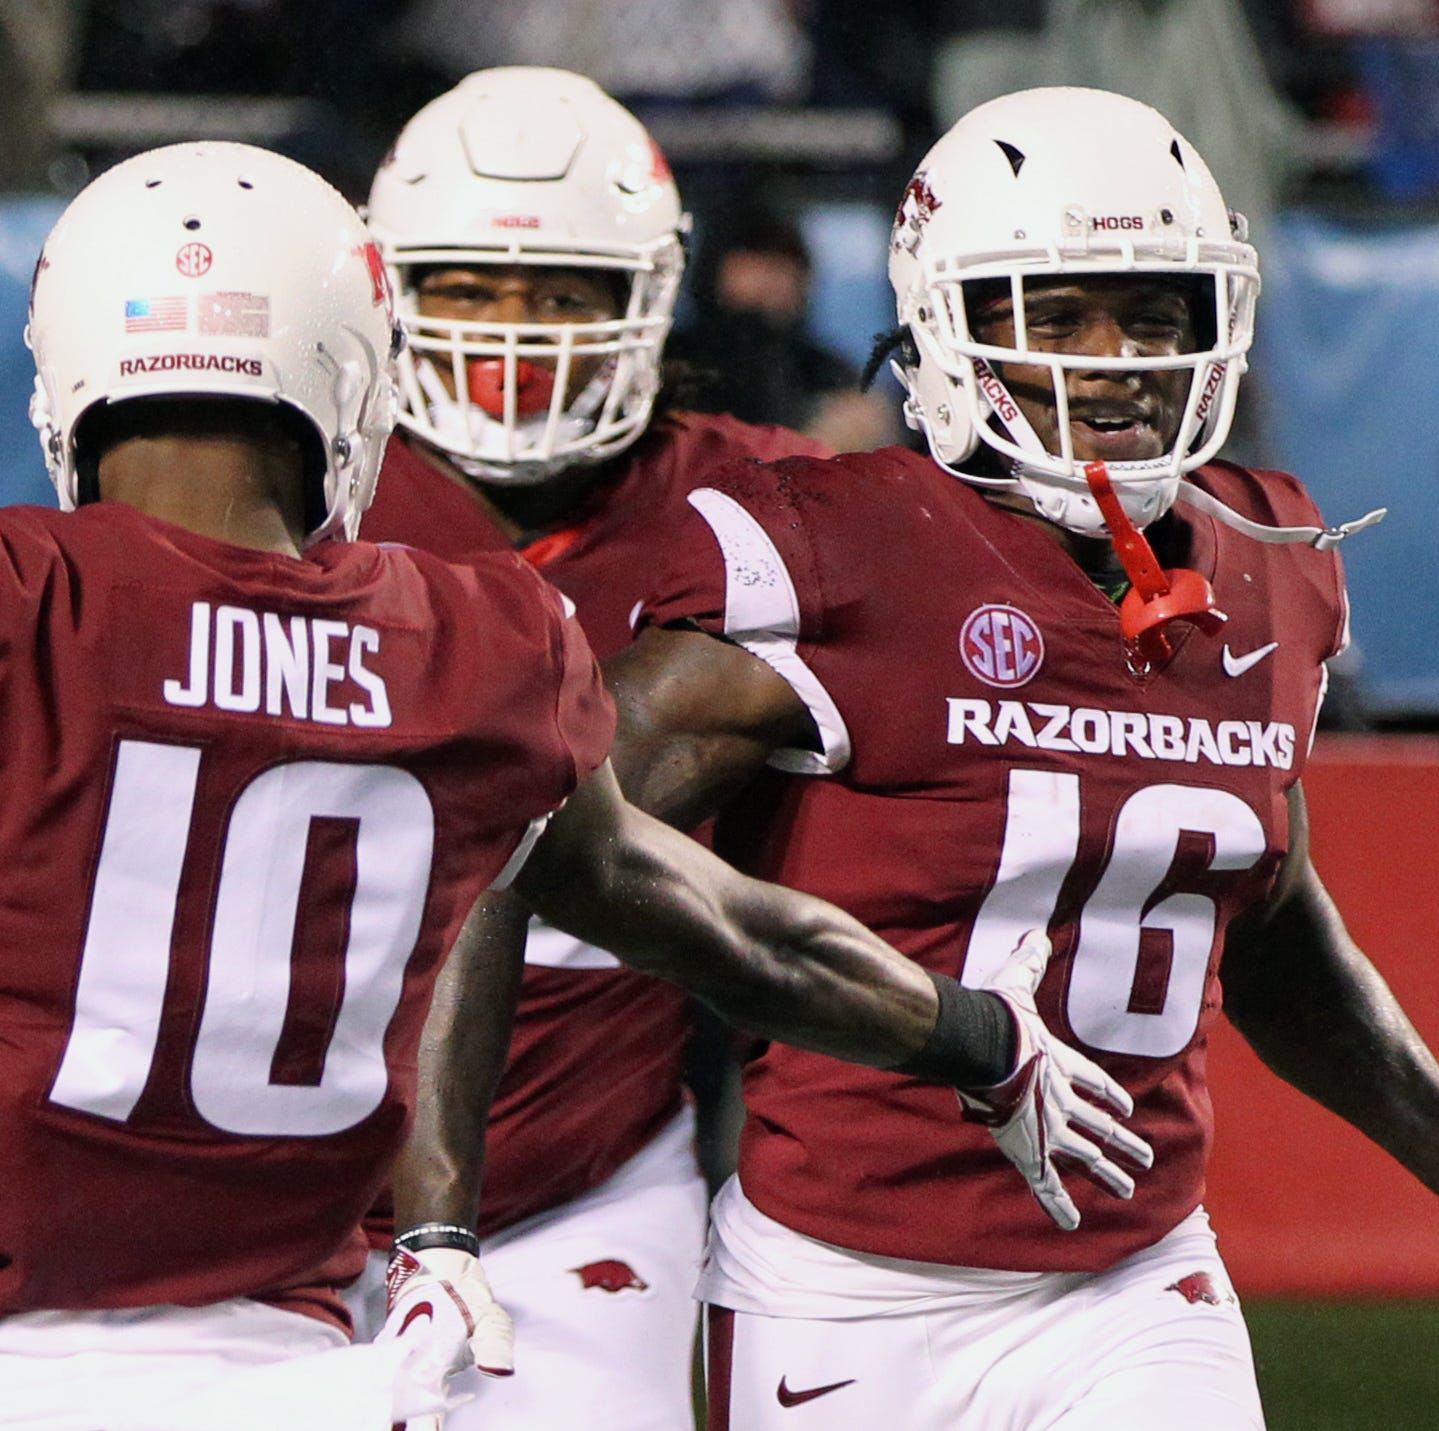 Despite Ole Miss victory, Arkansas' big first-half plays expose weaknesses